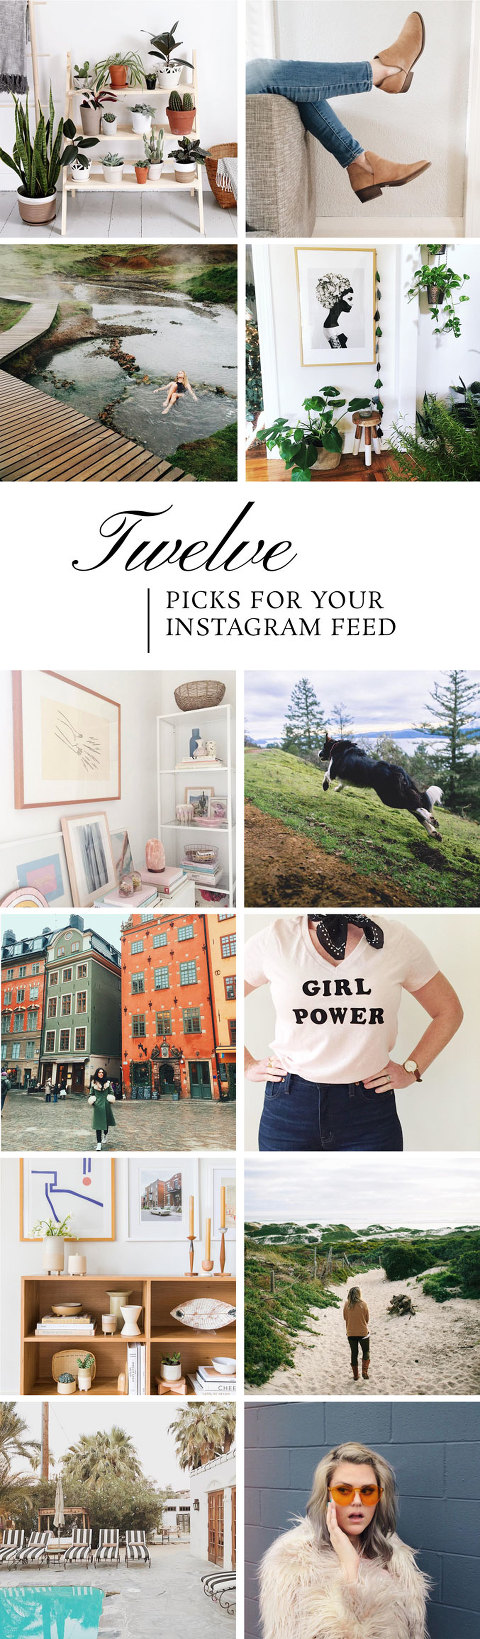 Twelve People To Add To Your Instagram Feed | dreamgreendiy.com